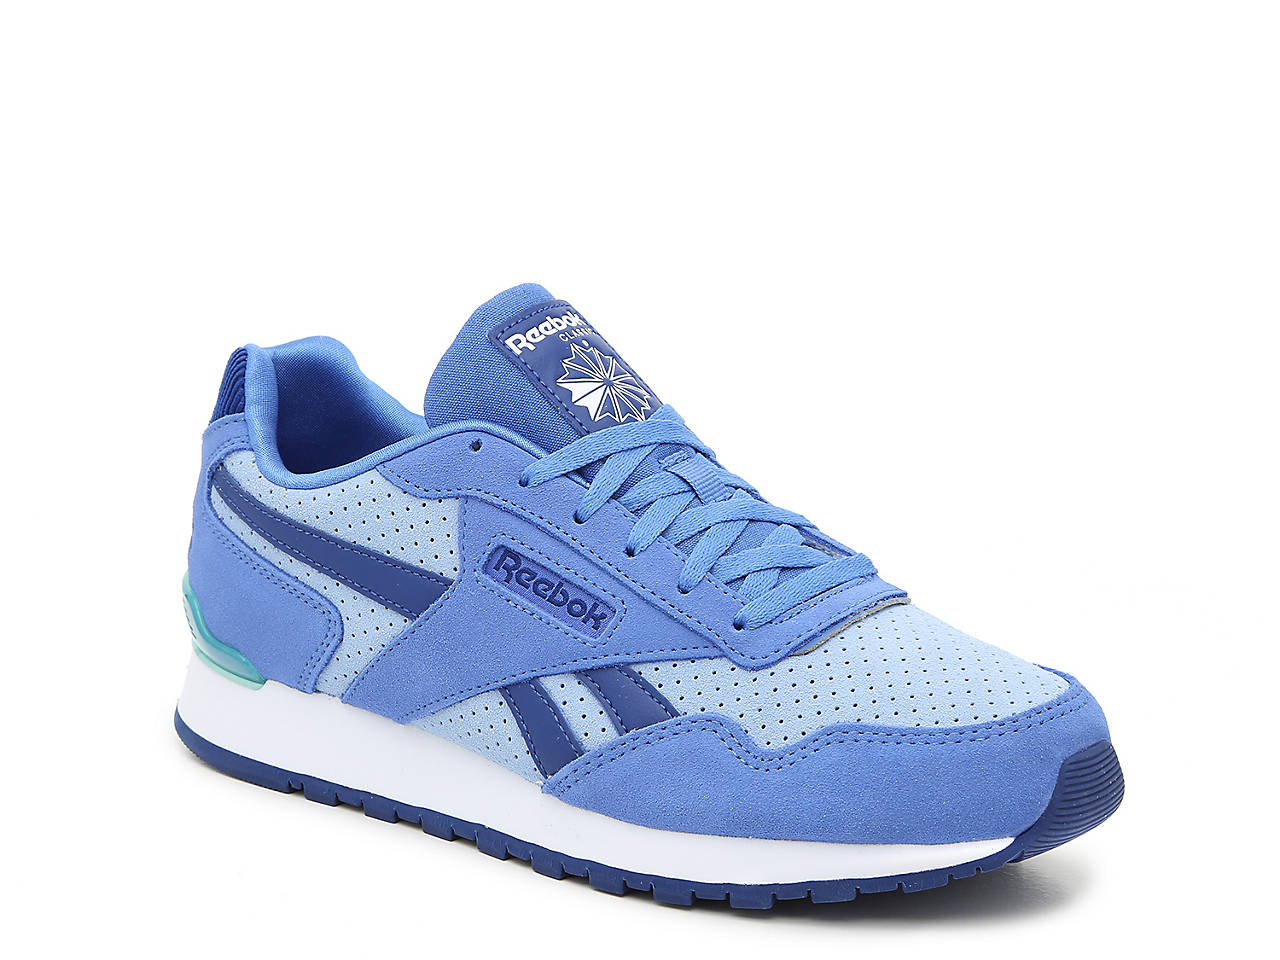 6c66bf429dea Reebok Harman Run Sneaker - Women s Women s Shoes